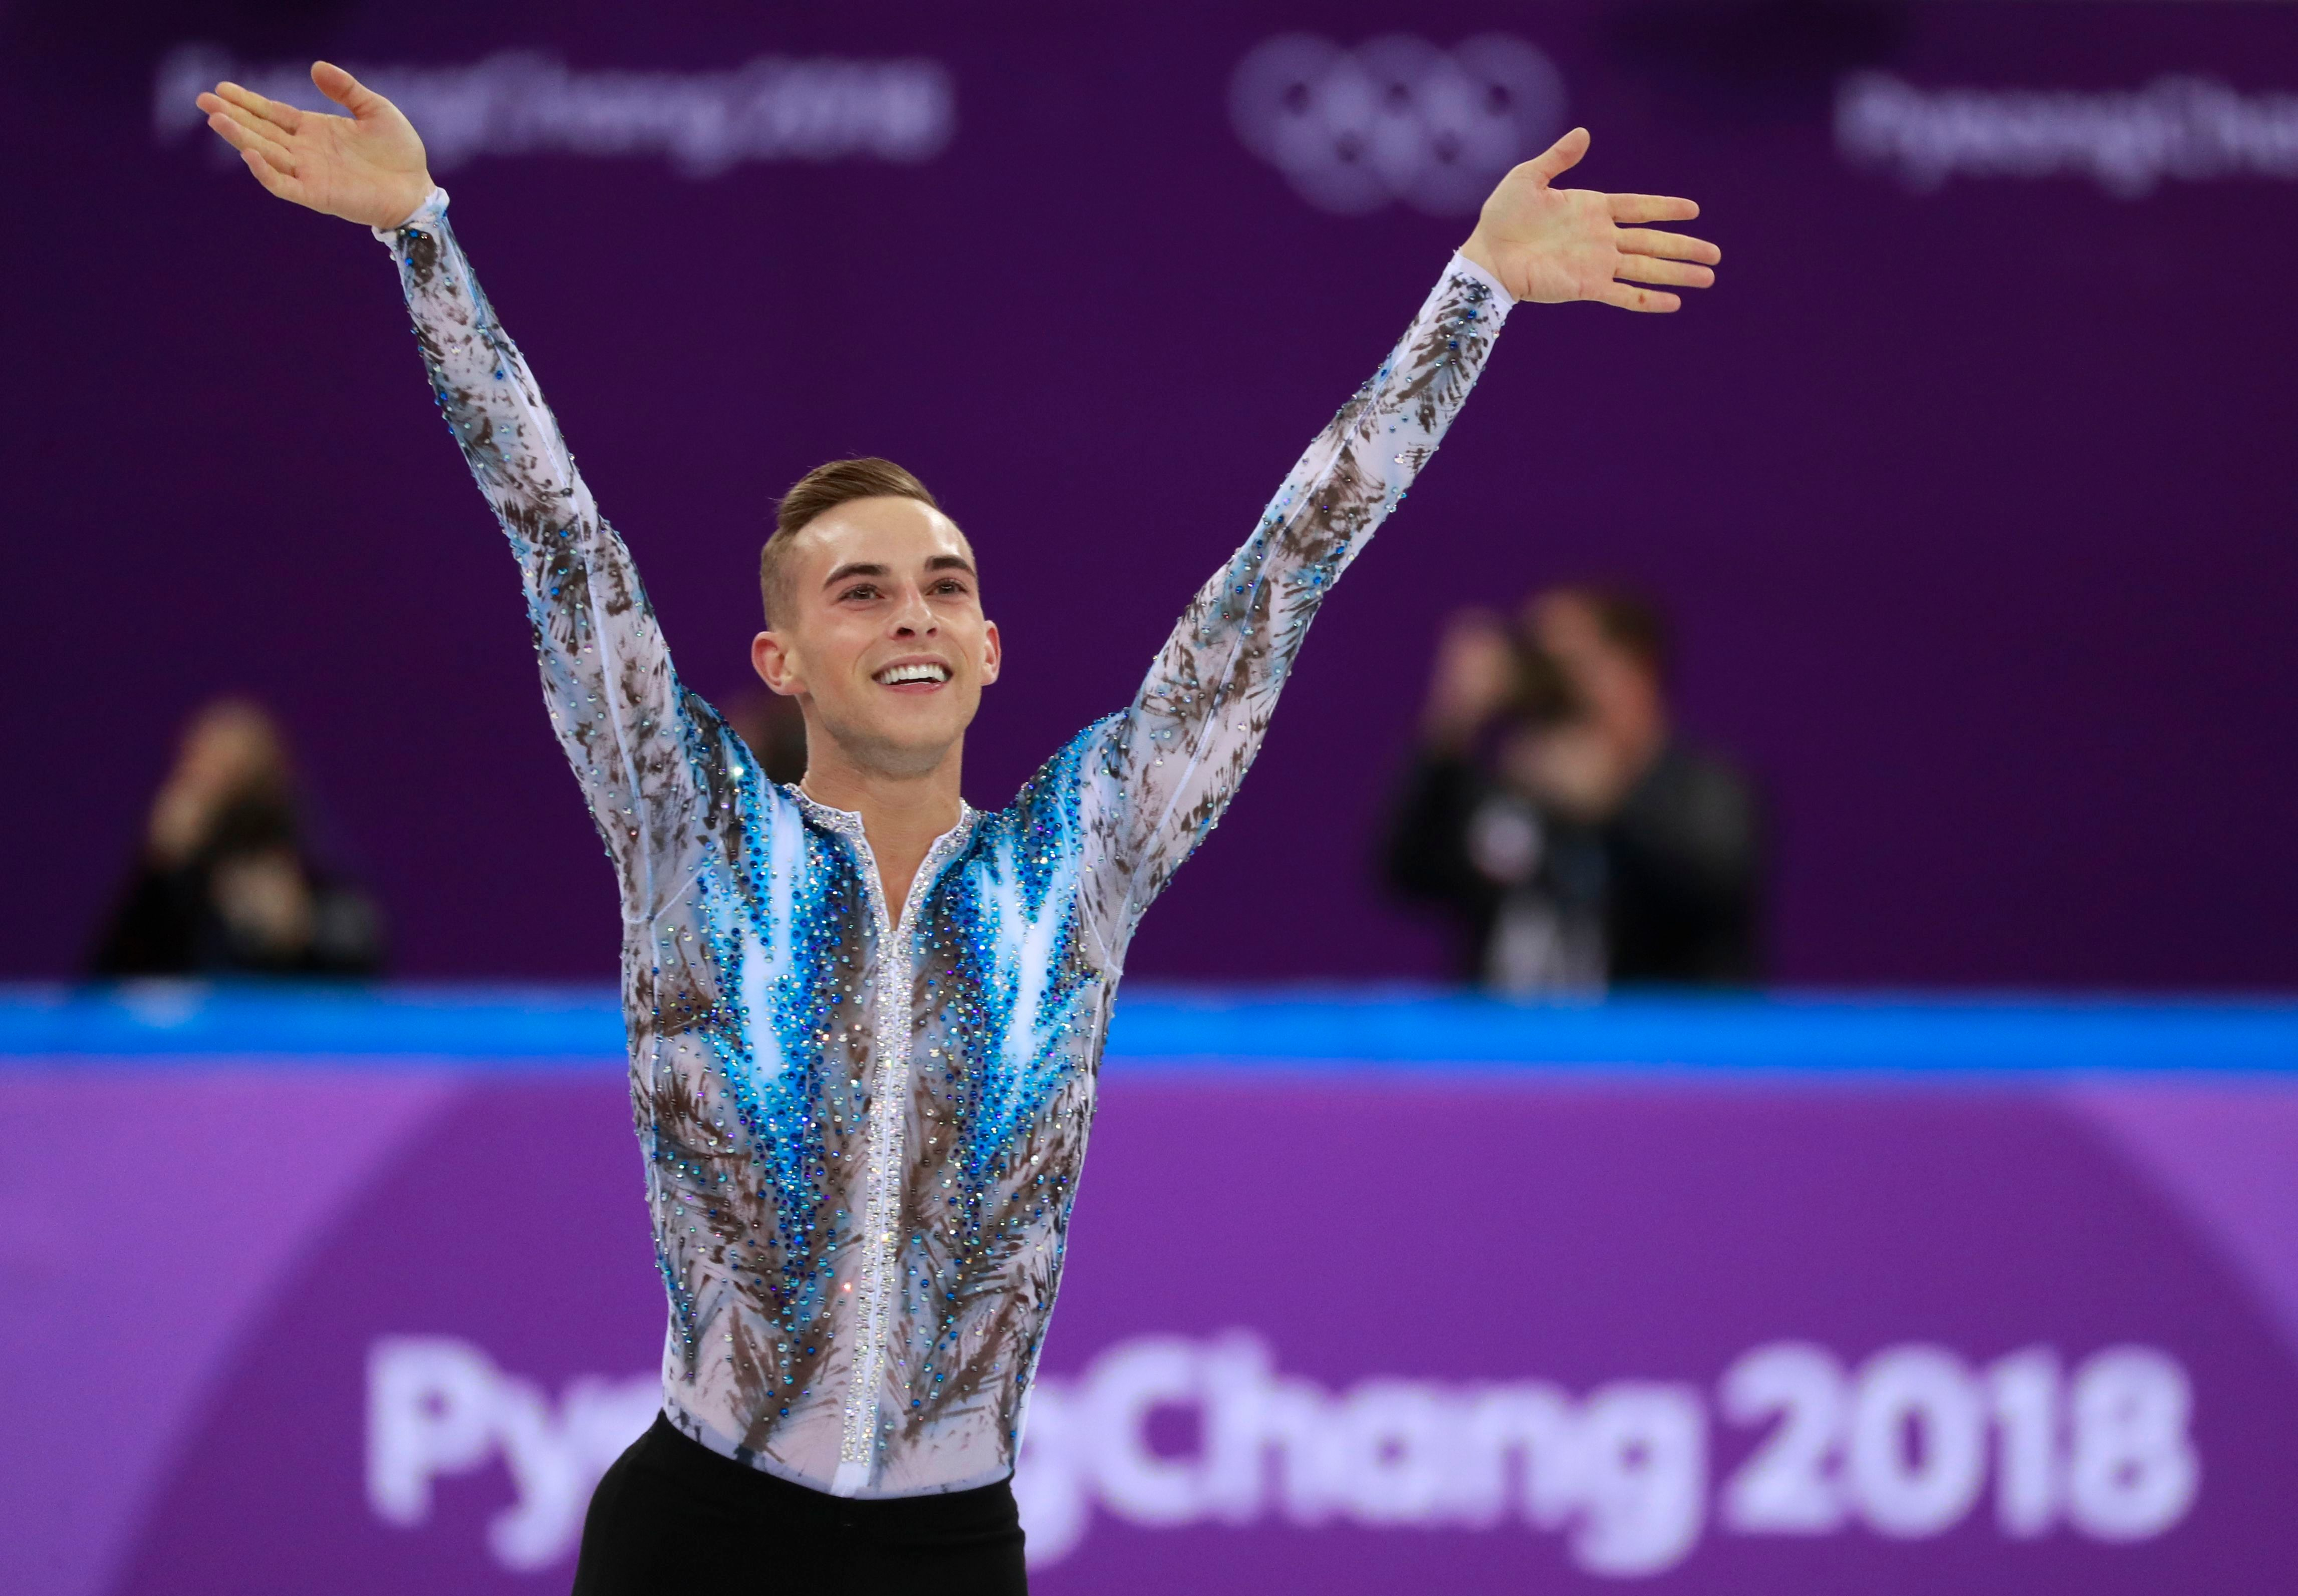 Adam Rippon Fires Back at Critics With Help From 'RuPaul's Drag Race'